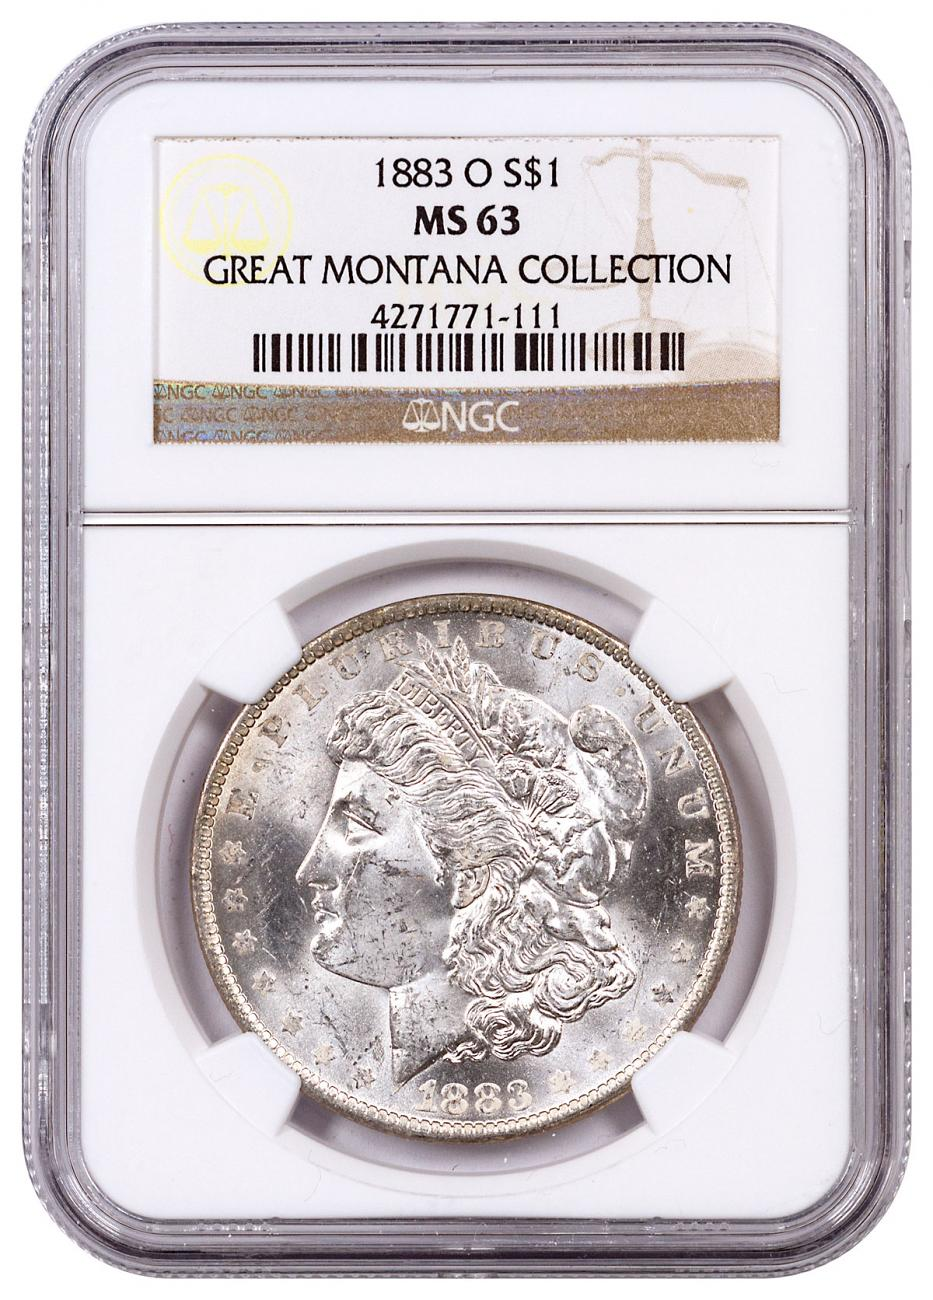 1883-O Morgan Silver Dollar From the Great Montana Collection NGC MS63 Toned CPCR 111